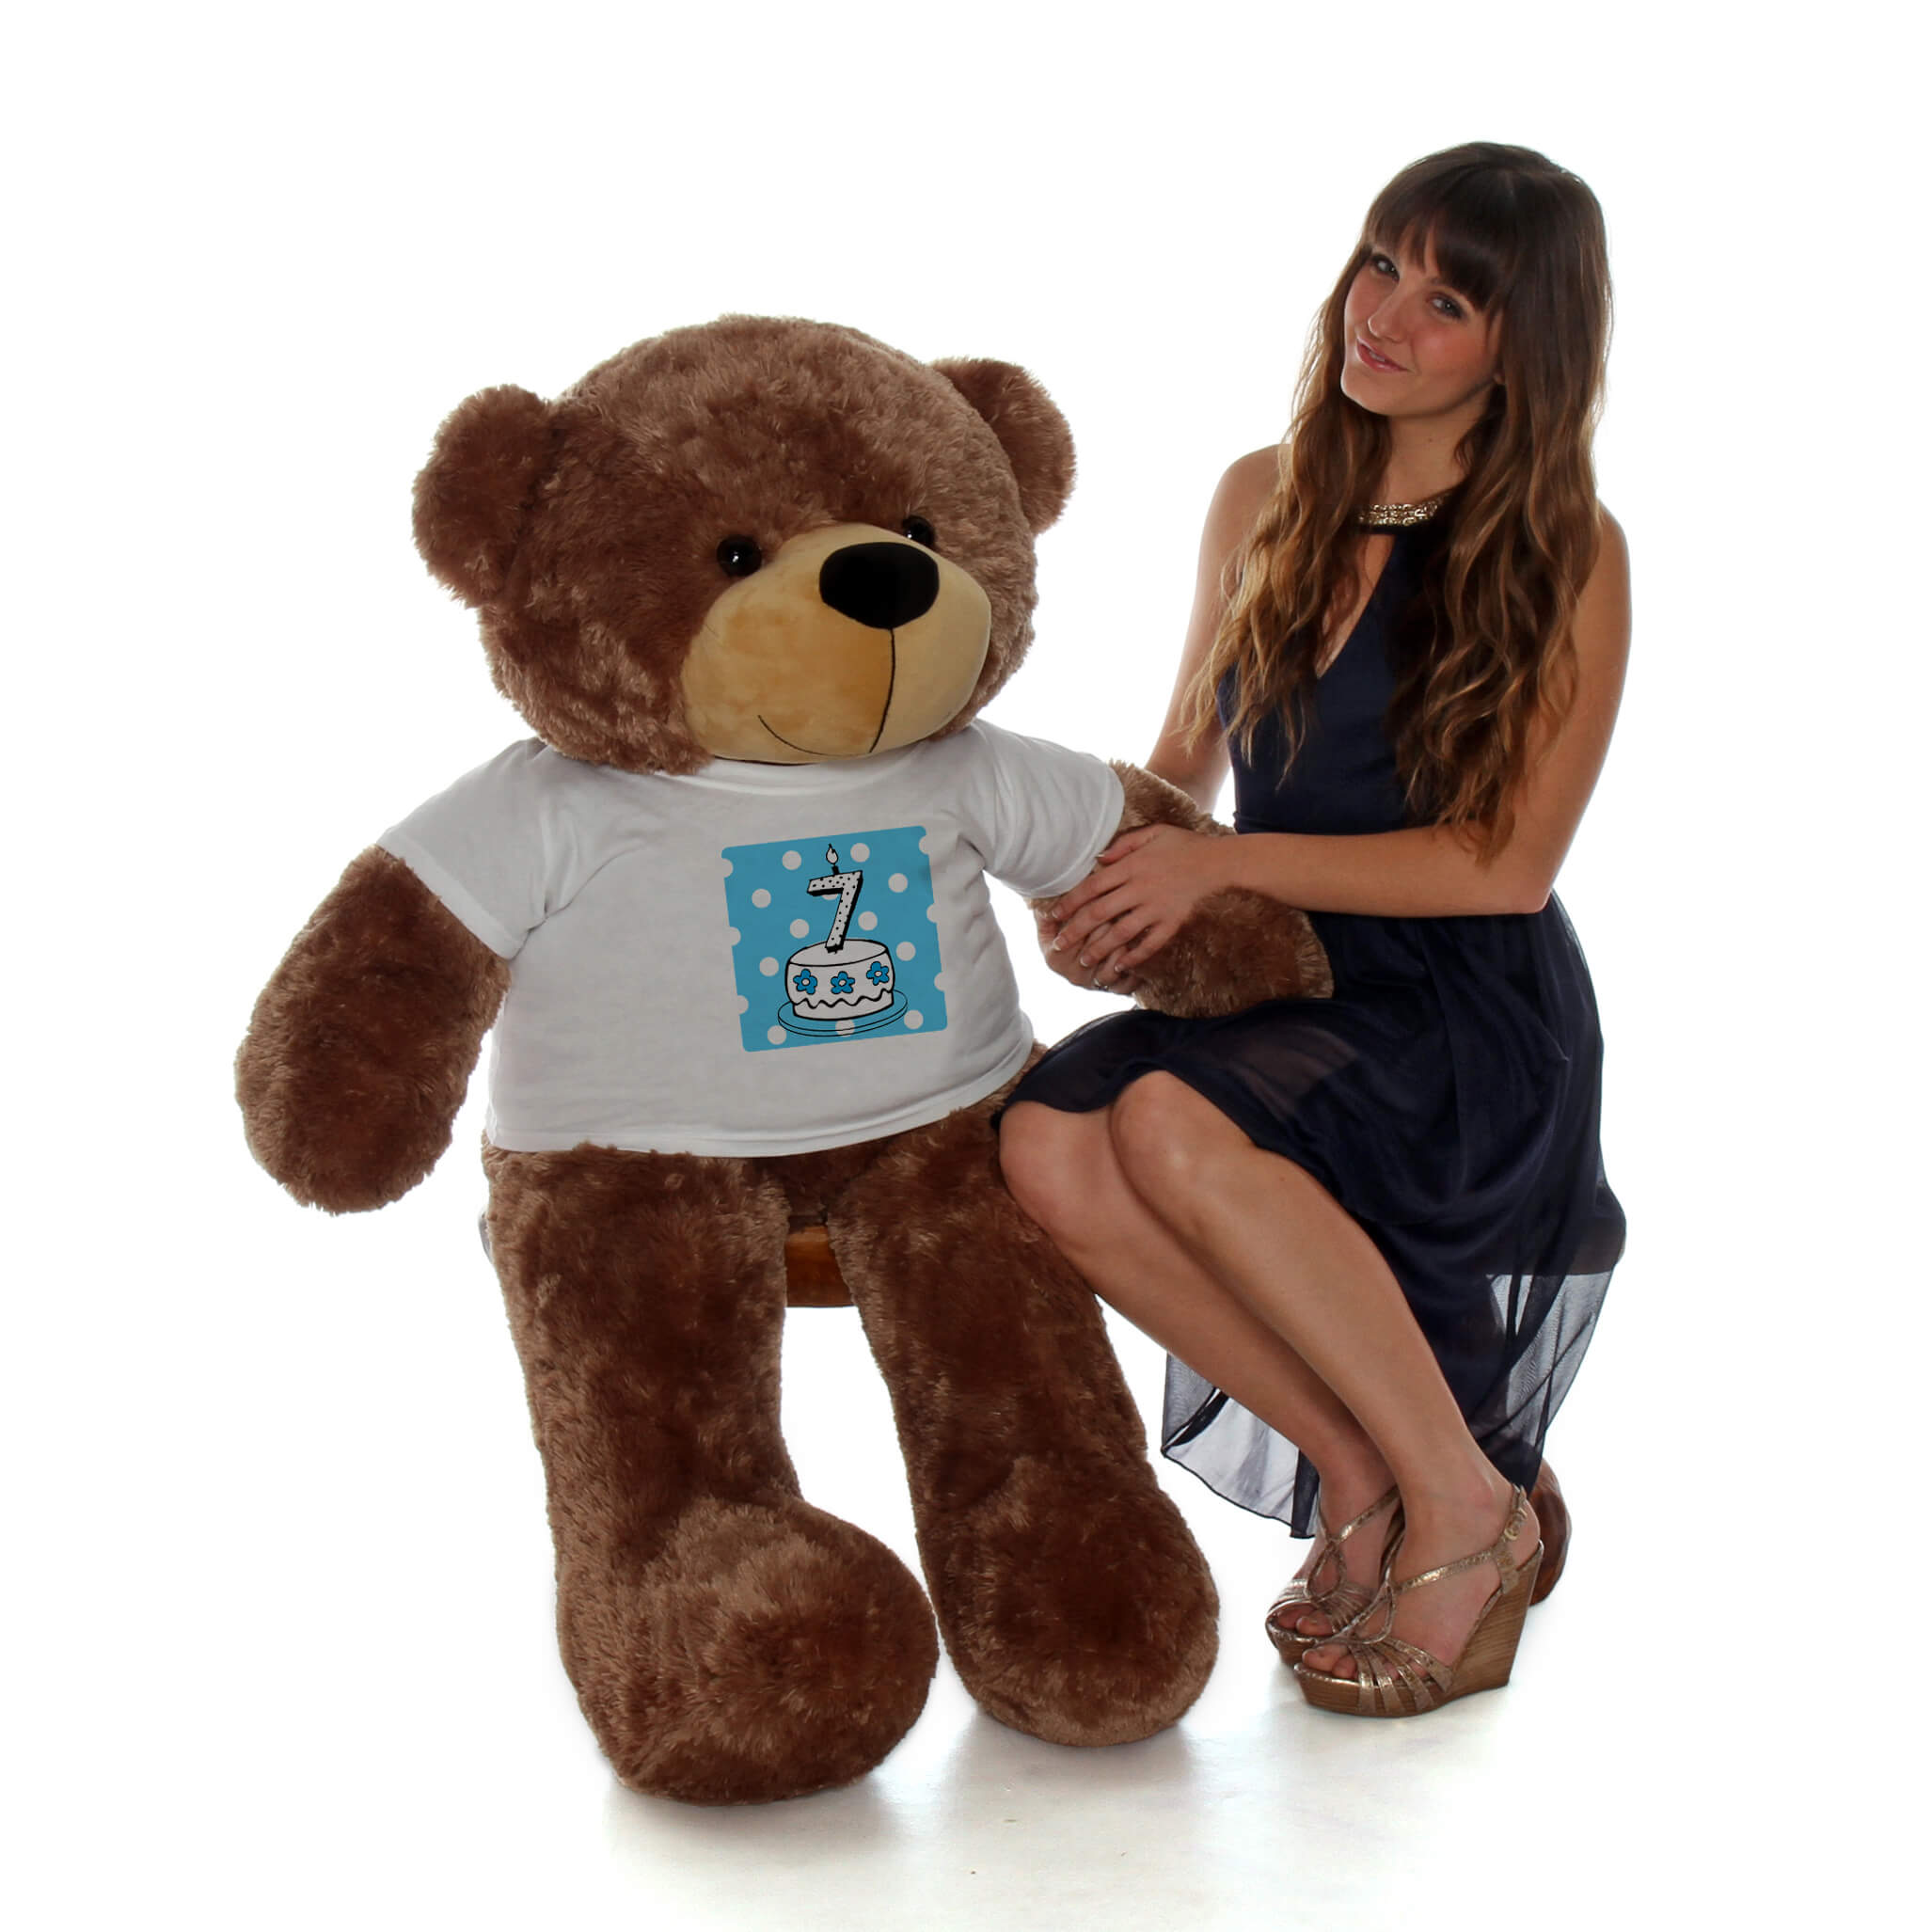 4ft-giant-teddy-sunny-cuddle-mocha-brown-bear-in-blue-birthday-cake-t-shirt.jpg